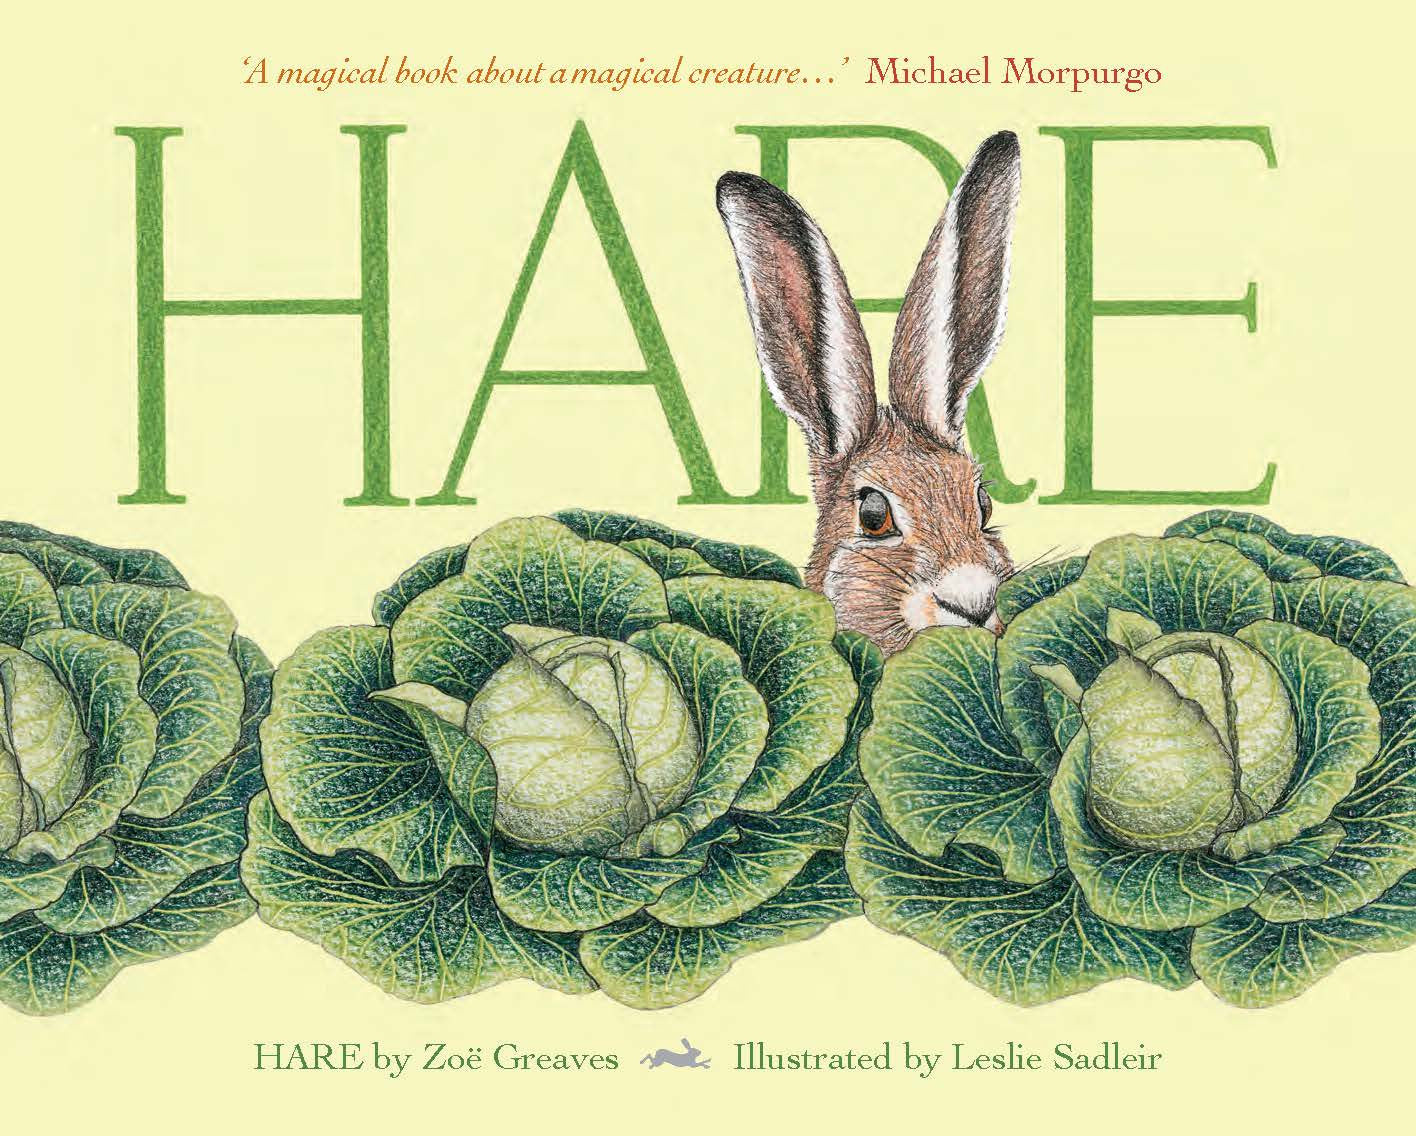 Hare by Zoe Greaves